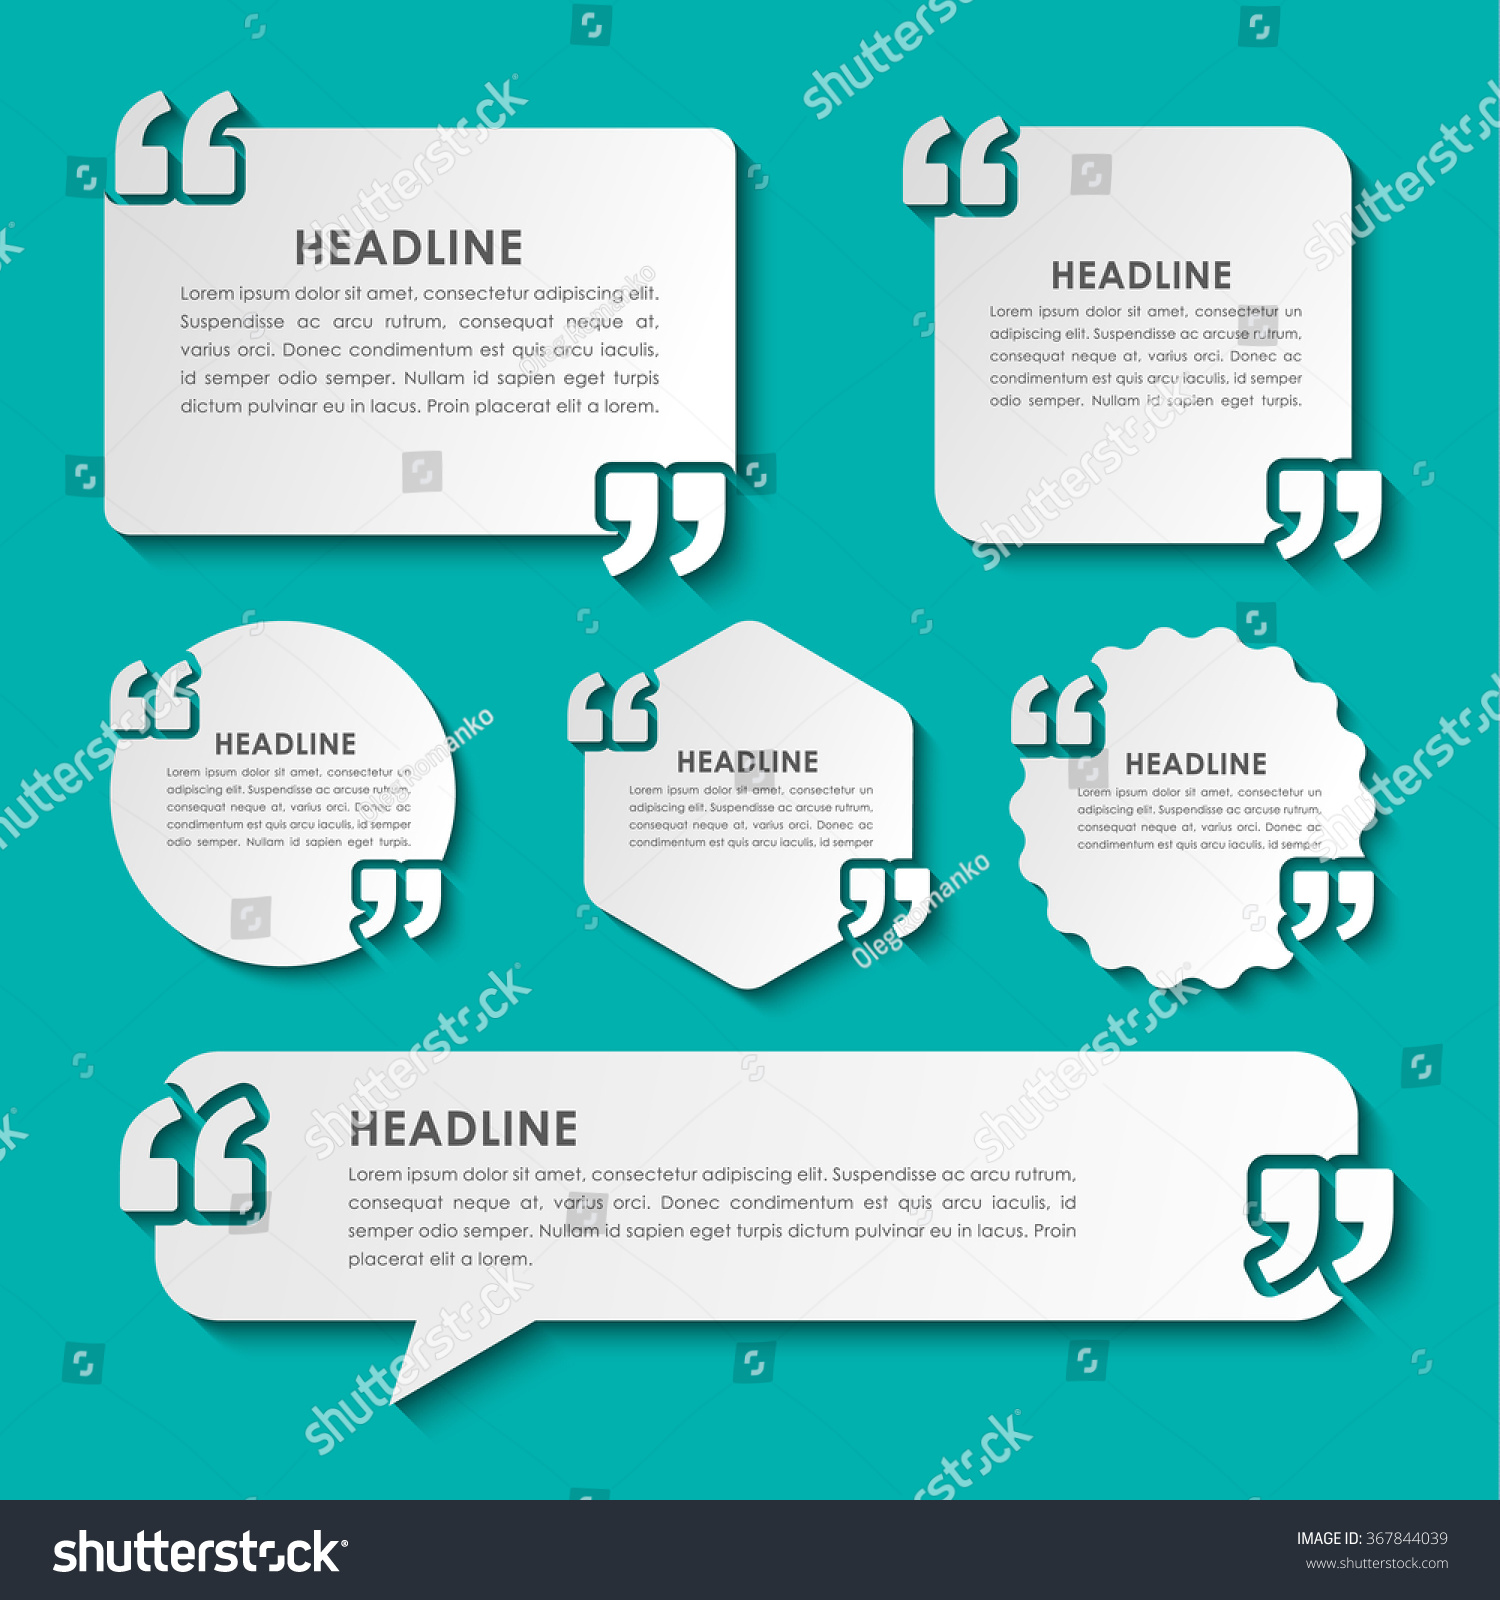 Orcl Stock Quote Set Bubbles Quotes Various Shapes Shadow Stock Vector 367844039